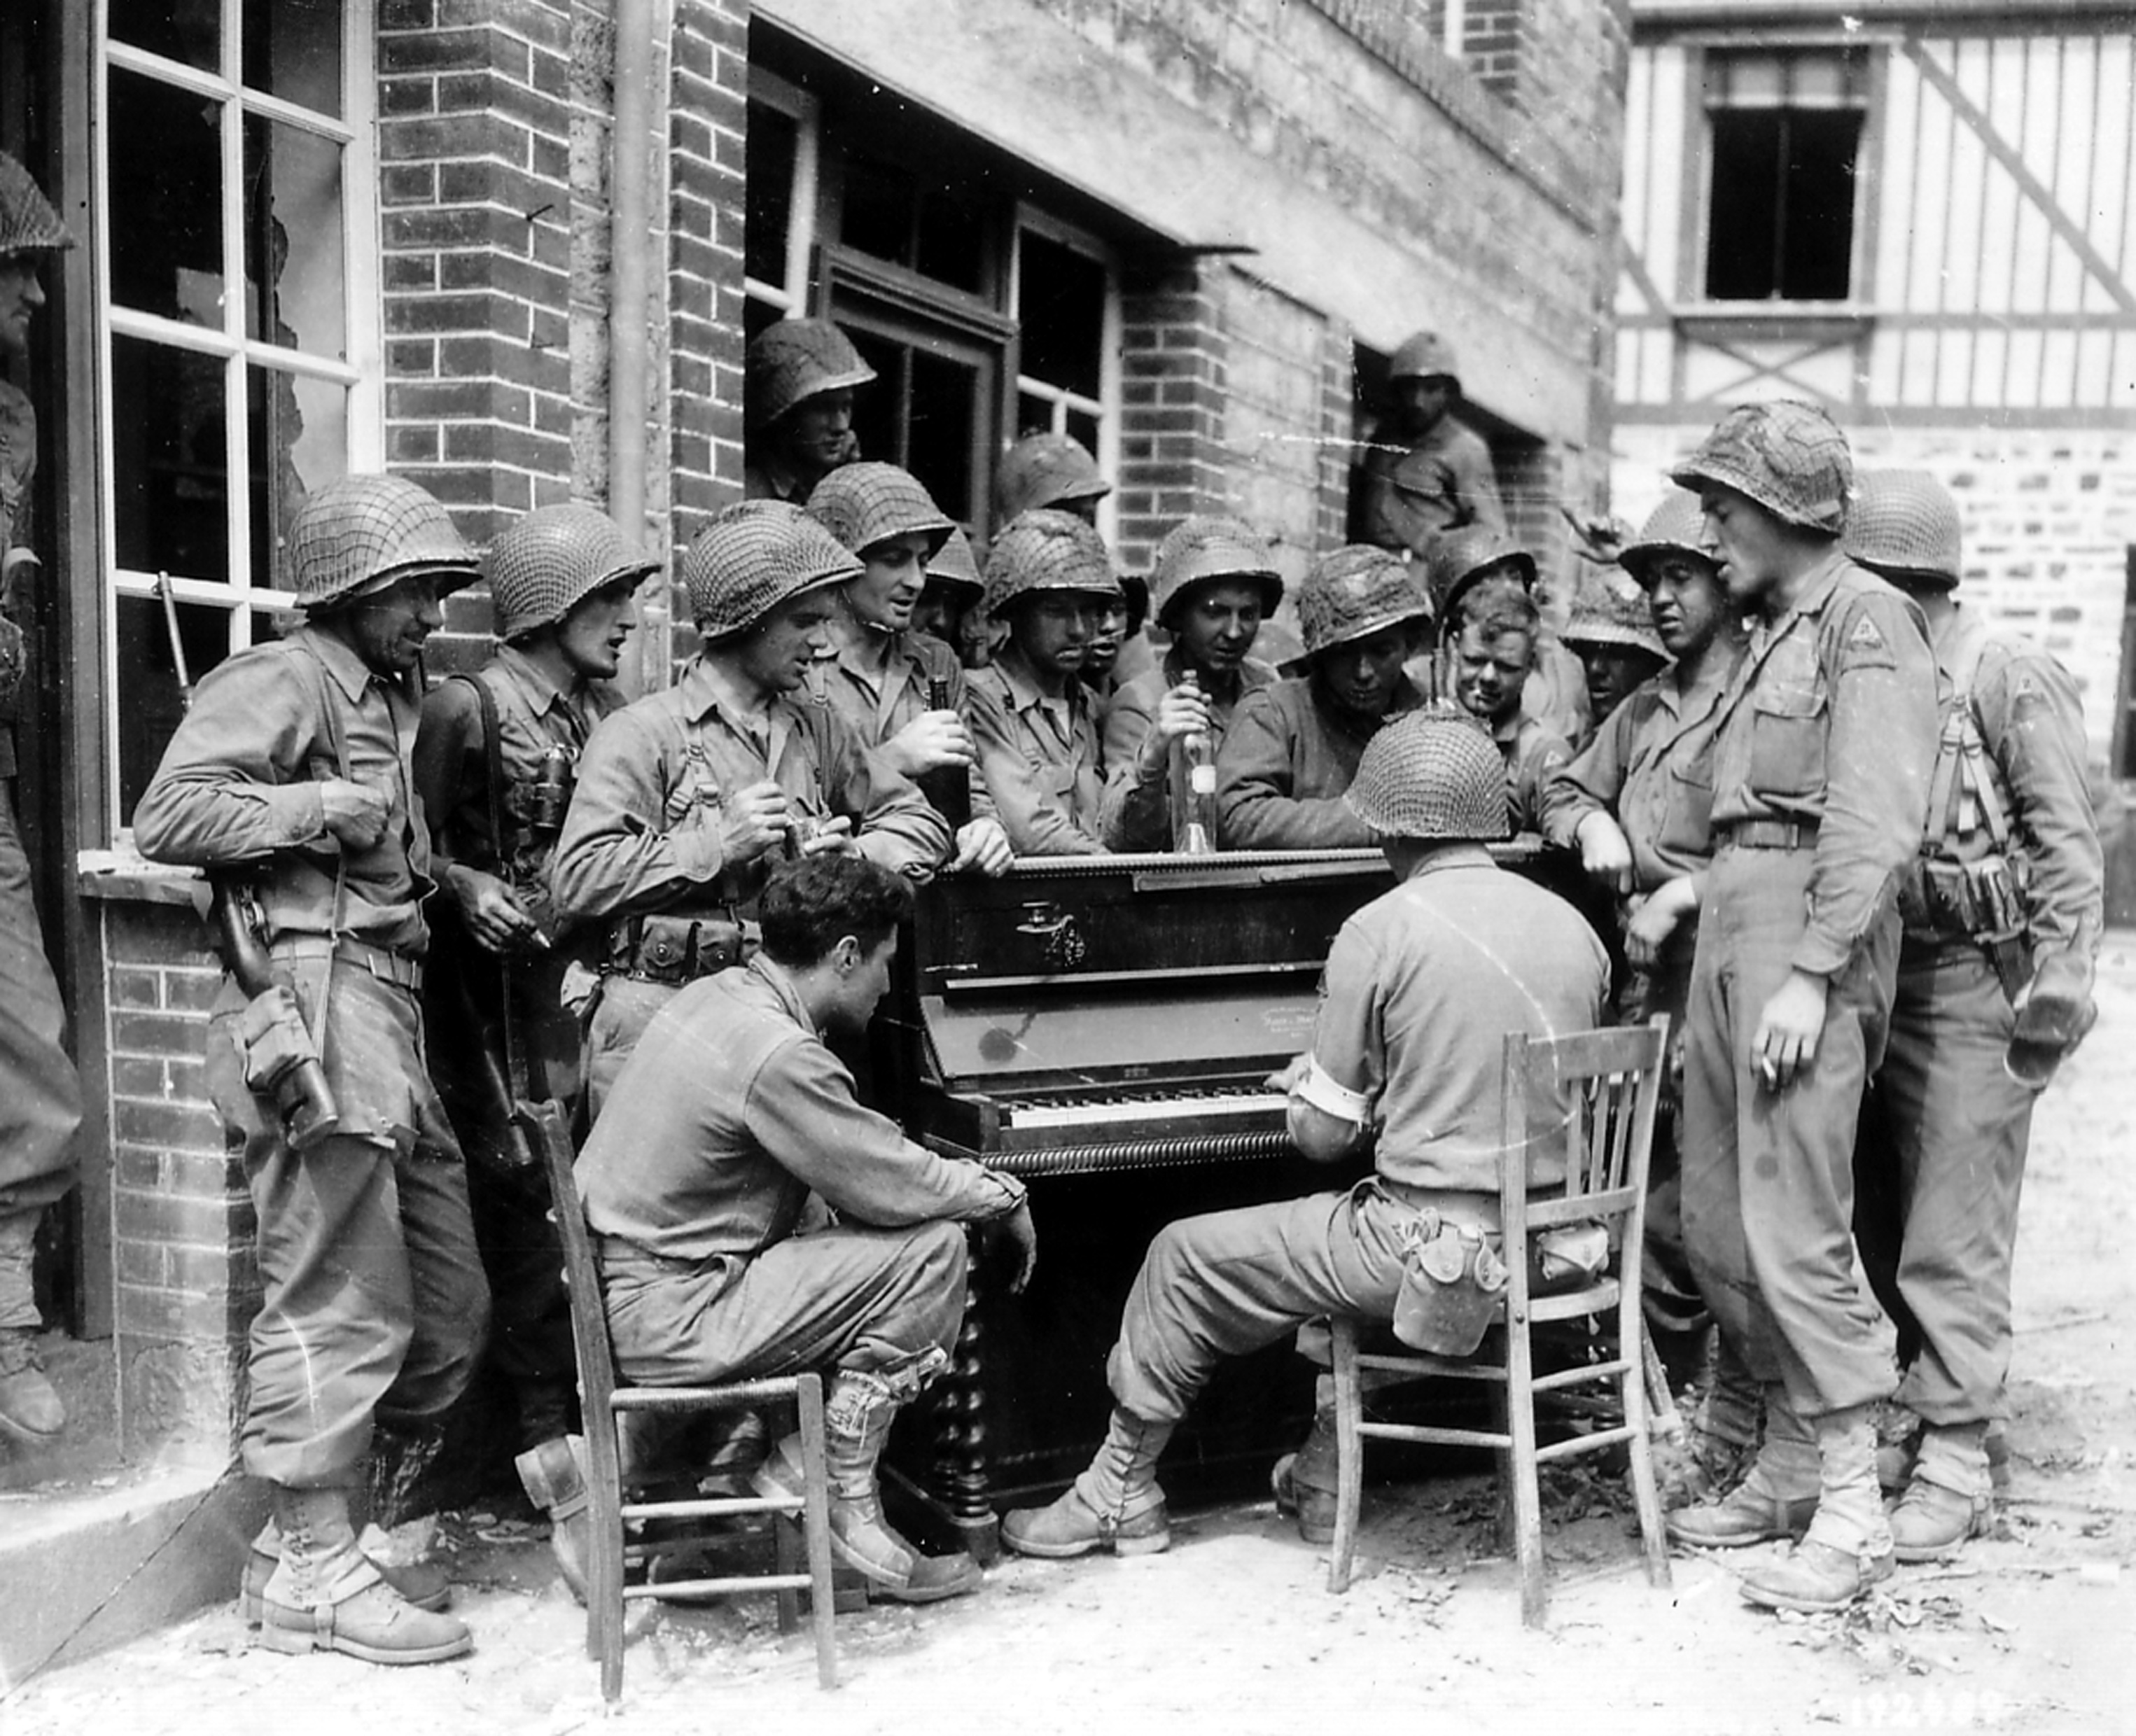 7th Engineers, Barenton Frankrijk, 10 augustus 1944 zw sing Go to Town in the Rue Monteglise, Barenton